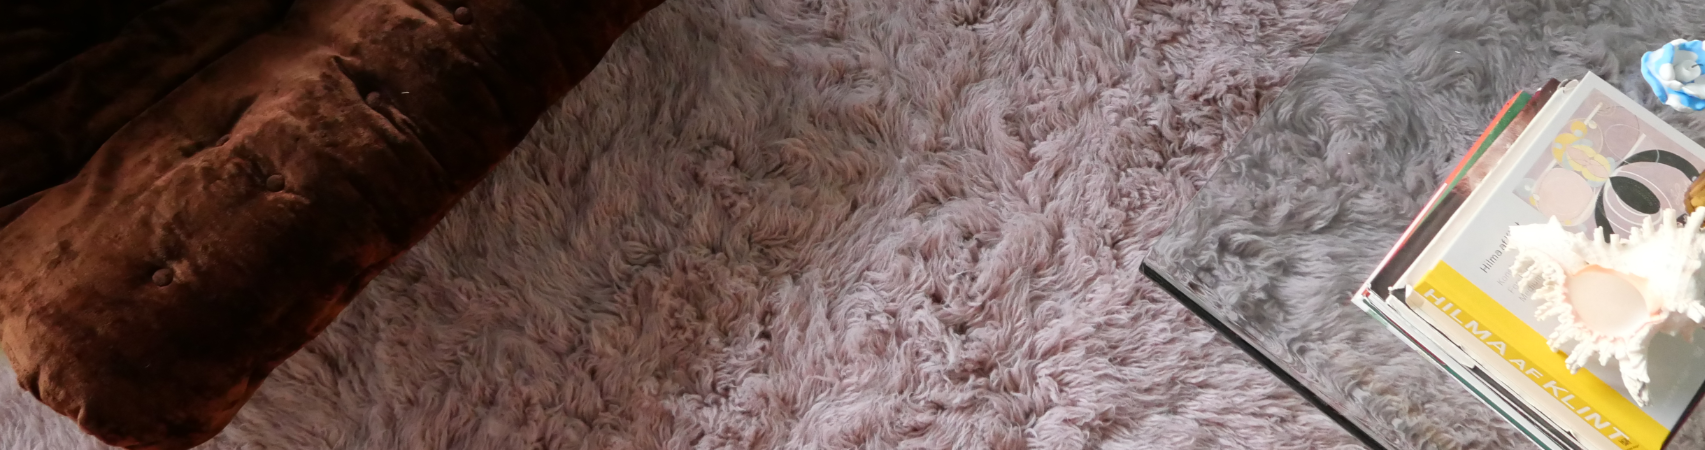 Shaggy rugs from layered